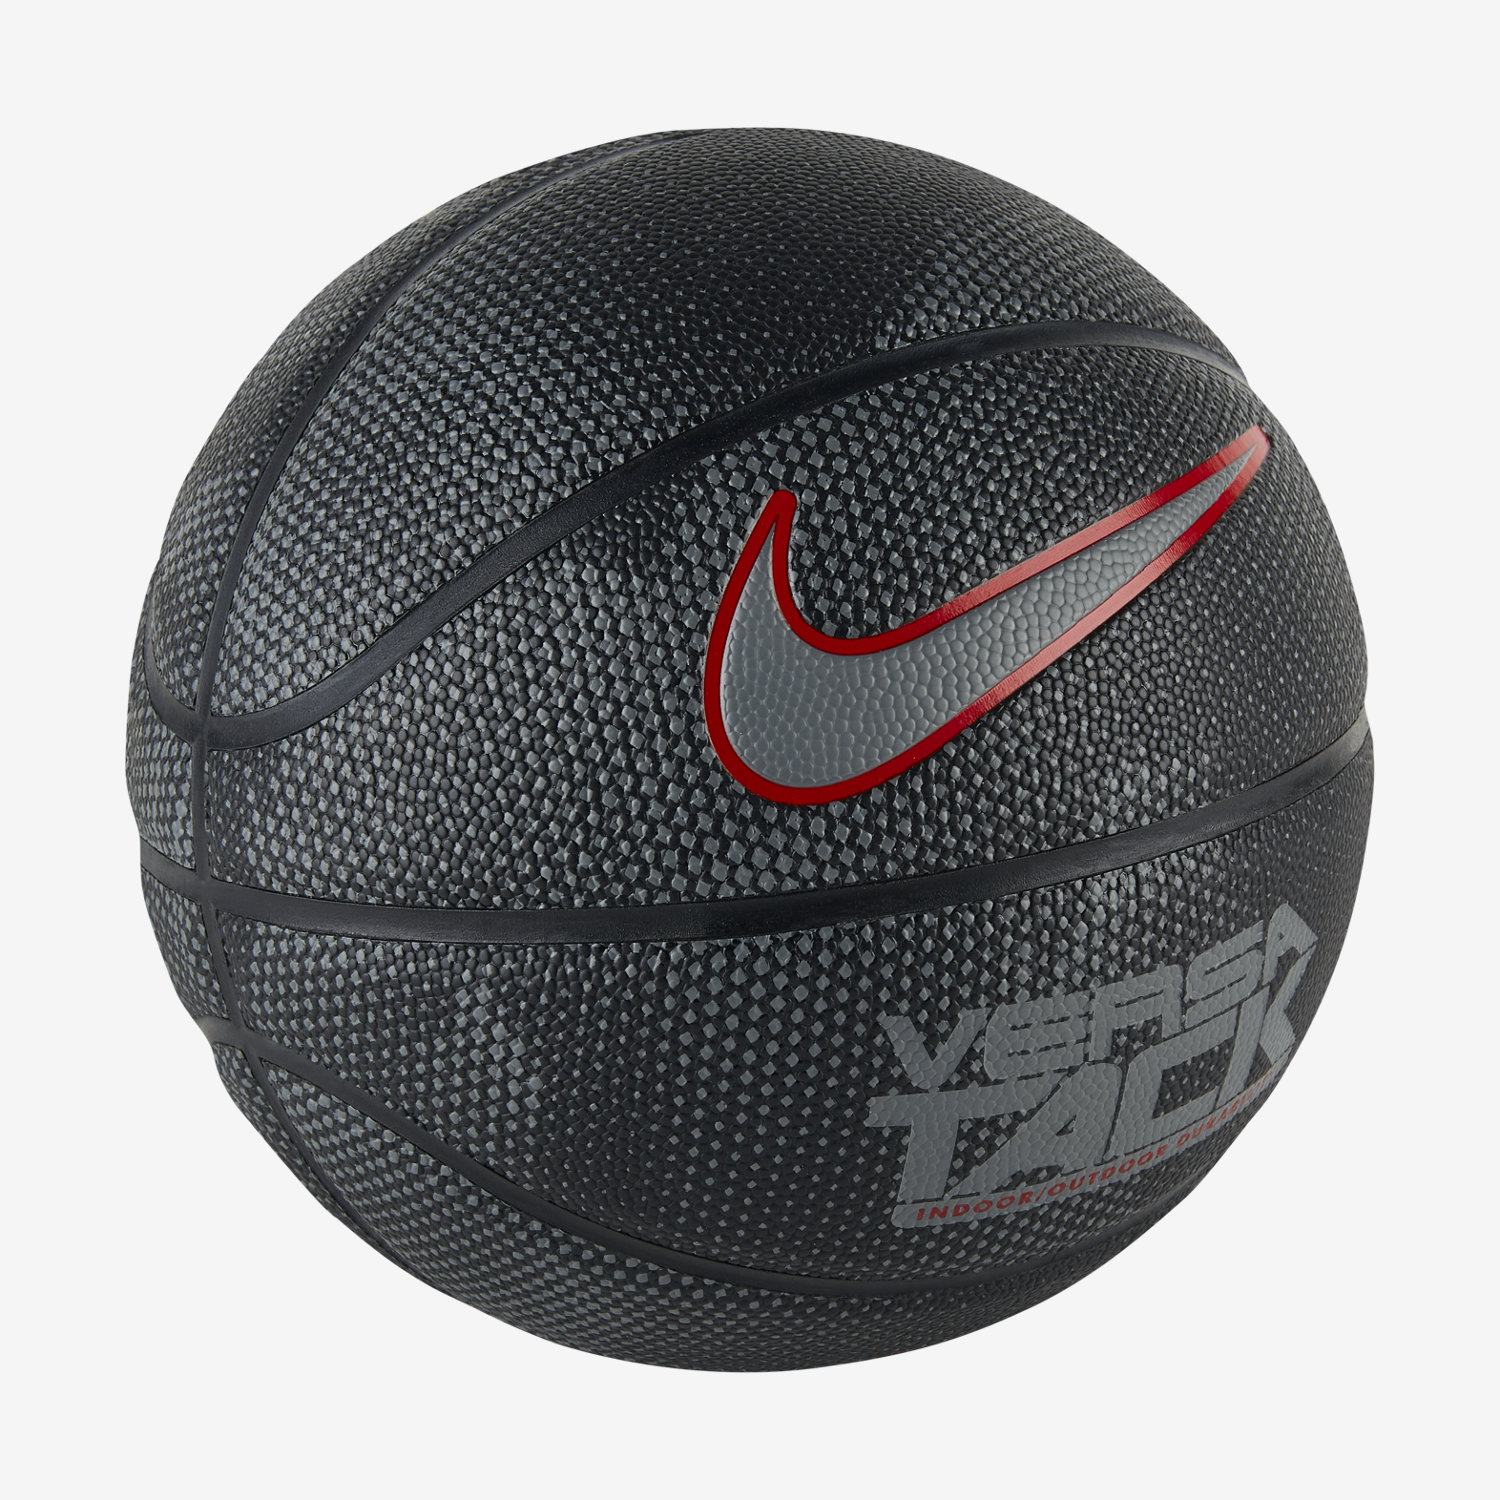 nike indoor outdoor versa tack 8p basketball ball